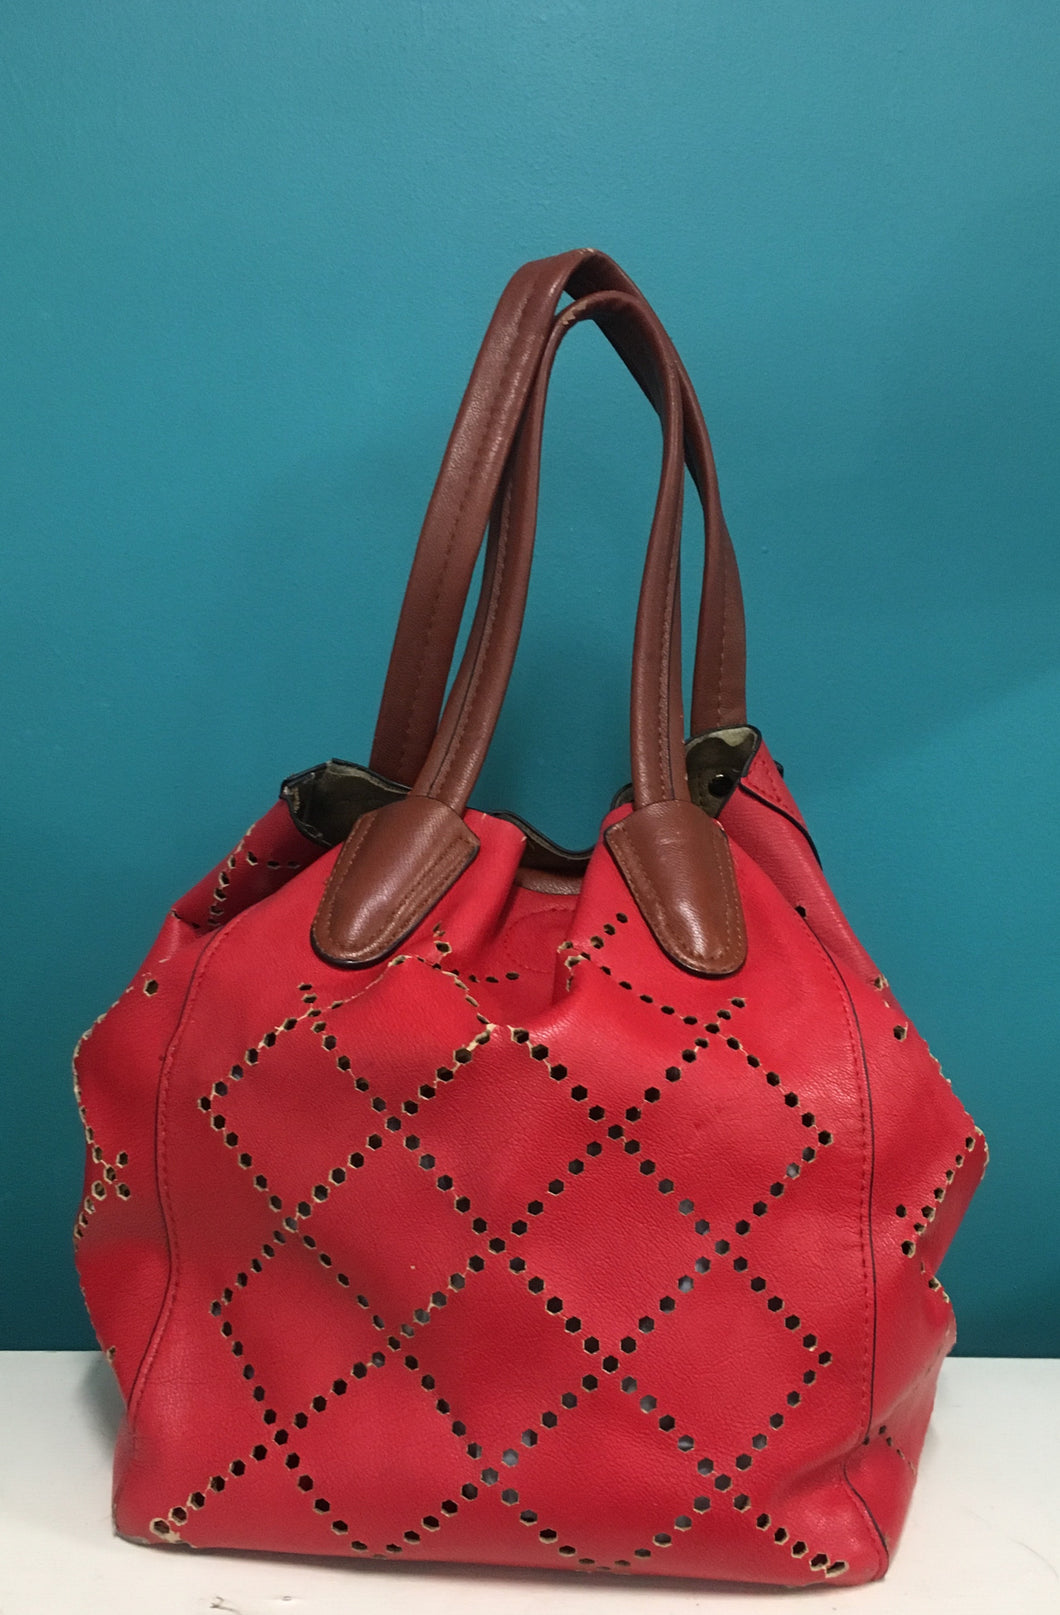 Red Bag with Cutout Detail - Designer Unknown